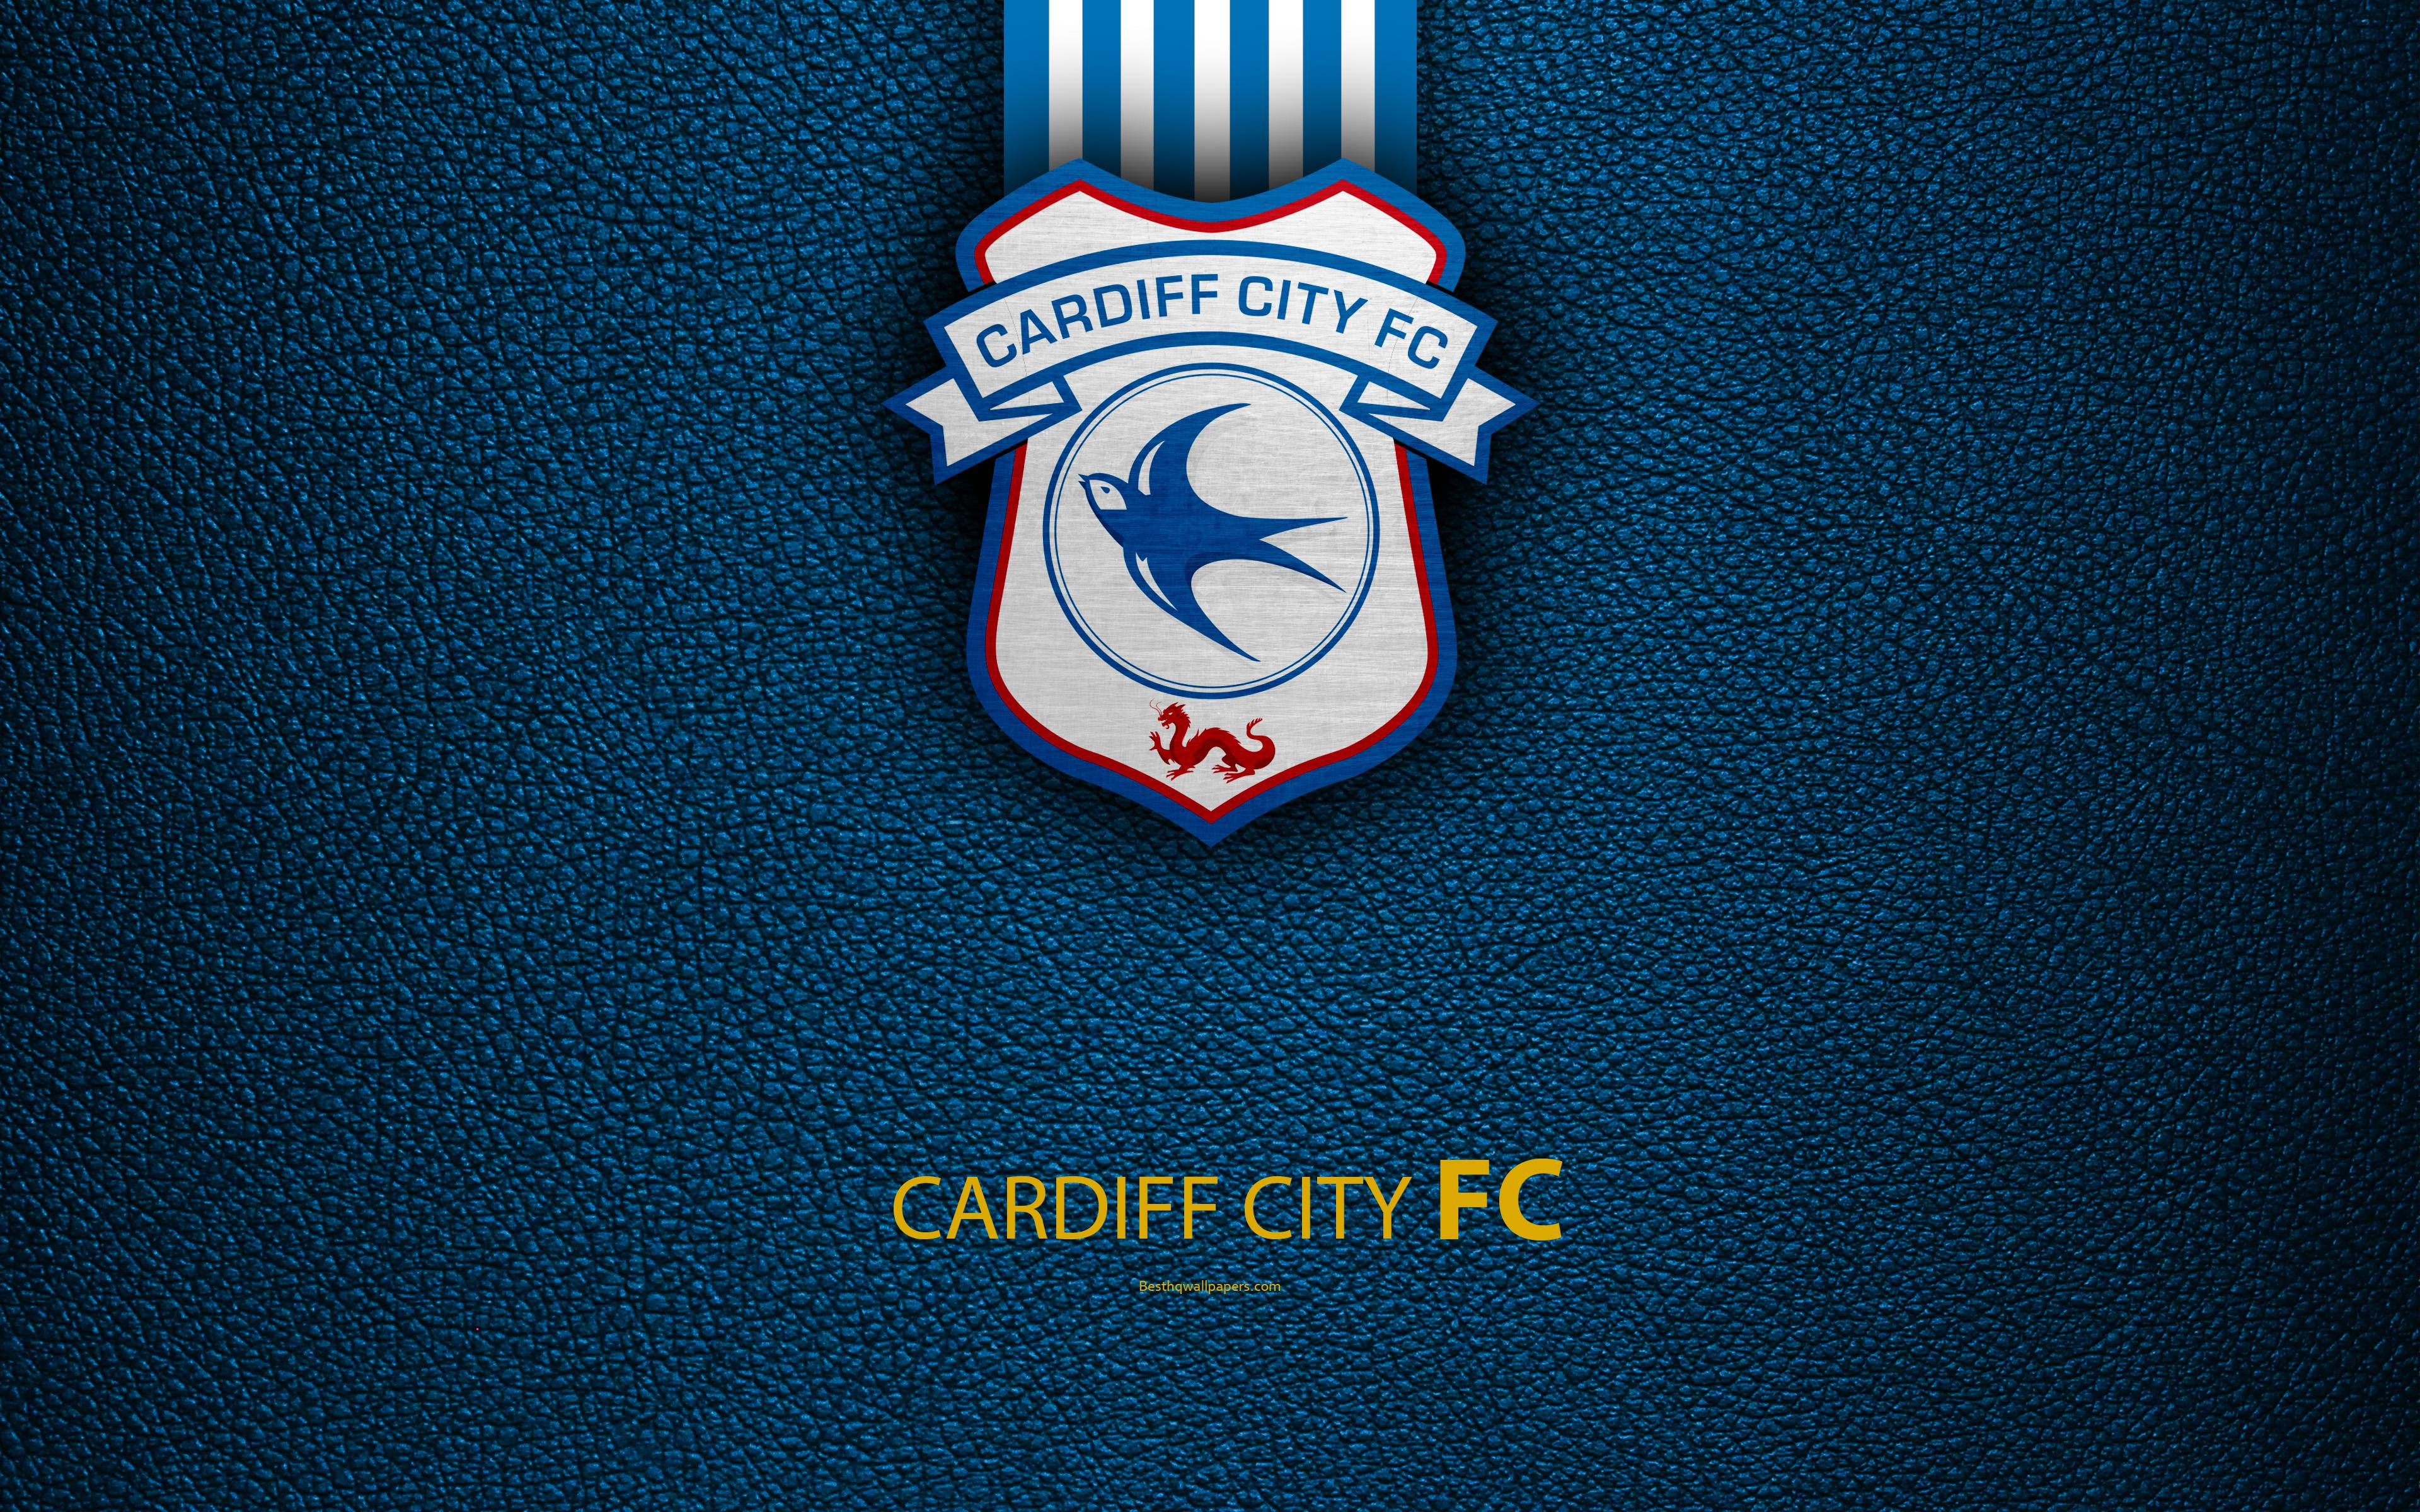 Download wallpapers Cardiff City FC, 4K, English football club, logo ...